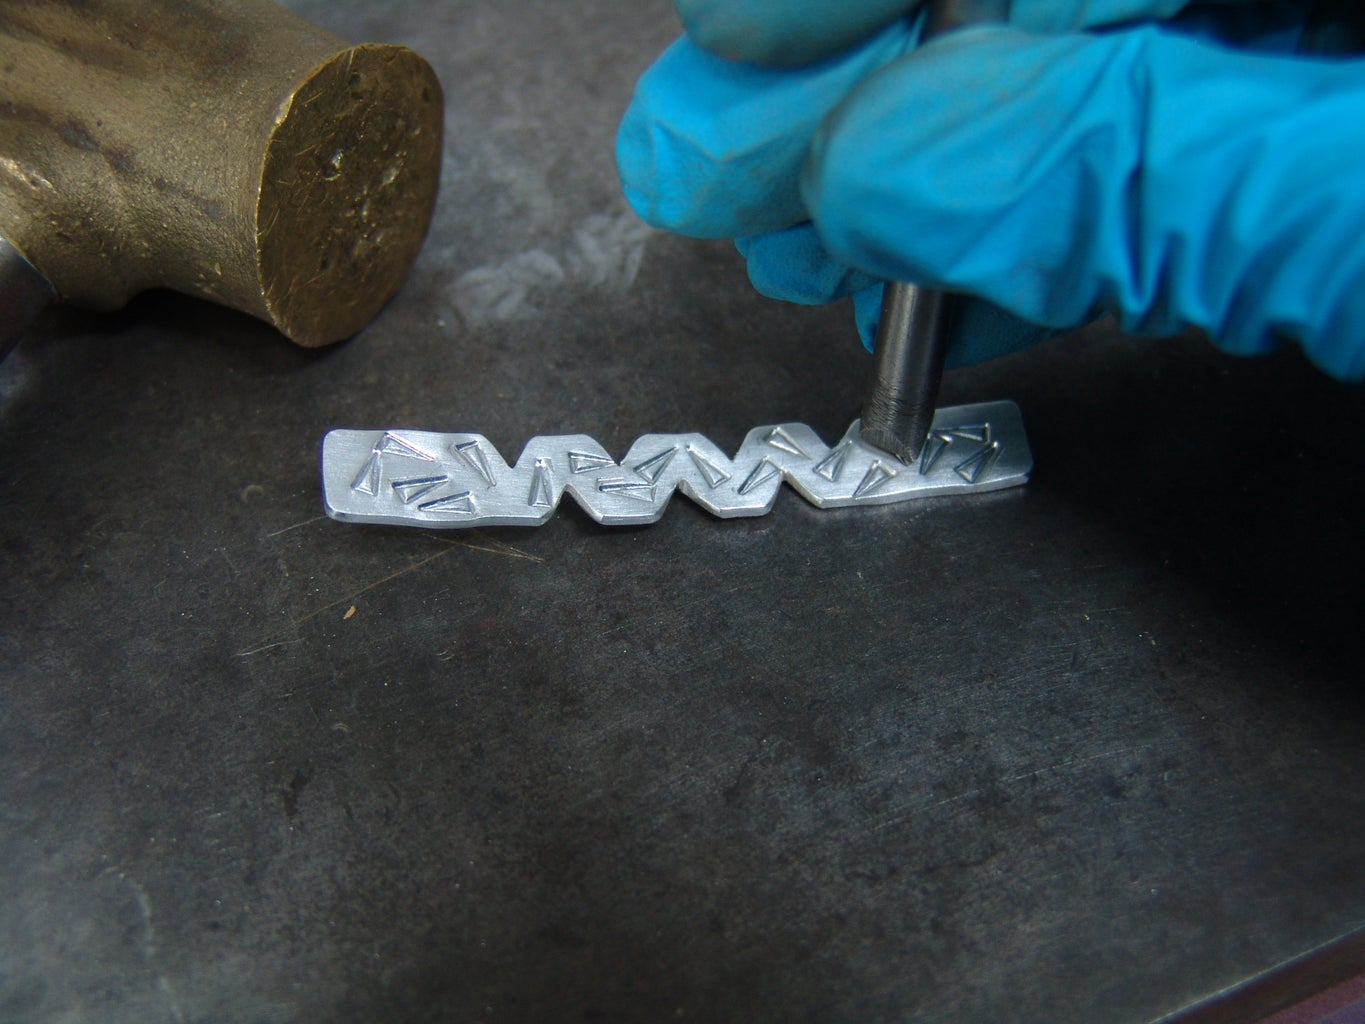 Stamping a Design on the Ring